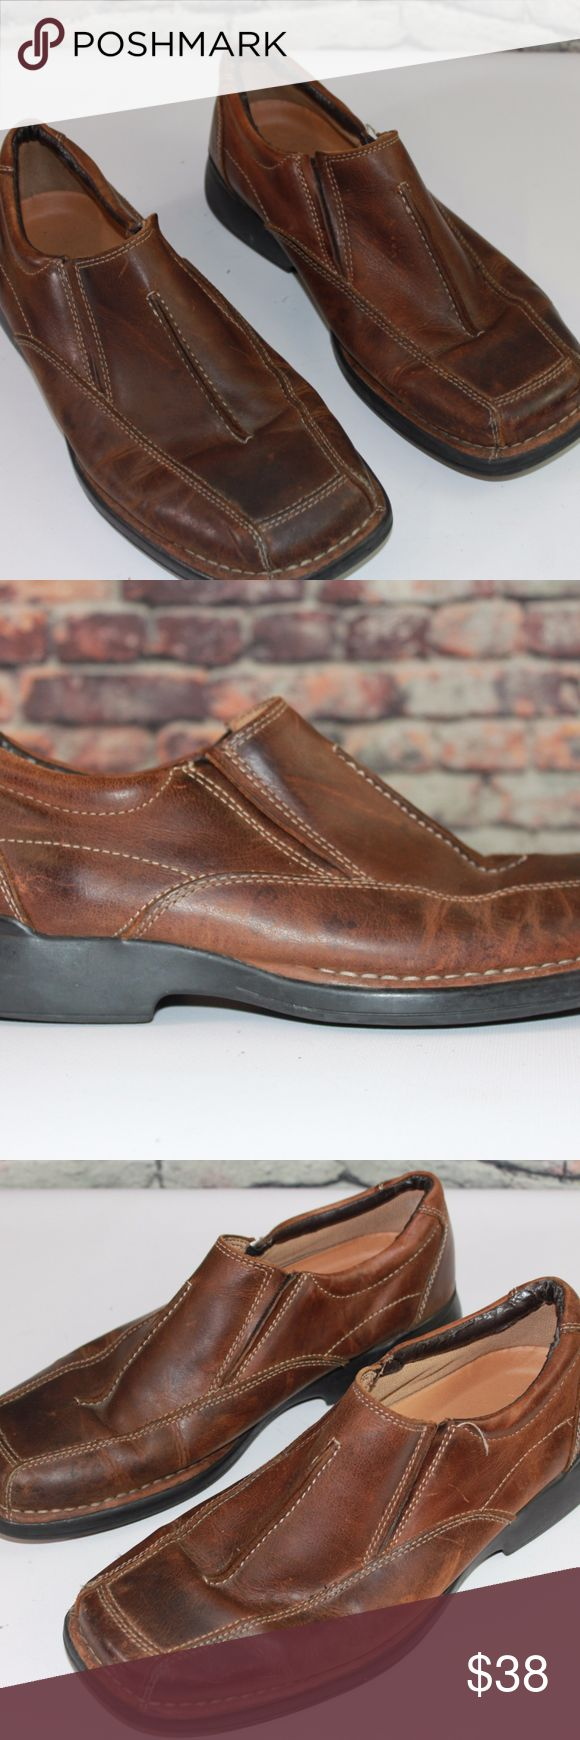 Skechers Mens Leather Loafers Brown 11 BA1L Skechers Mens Leather Loafers Brown  Size: 11  Good condition - good soles. Length of sole: 12 1/2 in Widest part of sole: 4 3/4 in  Thanks for looking! BA1L Skechers Shoes Loafers & Slip-Ons